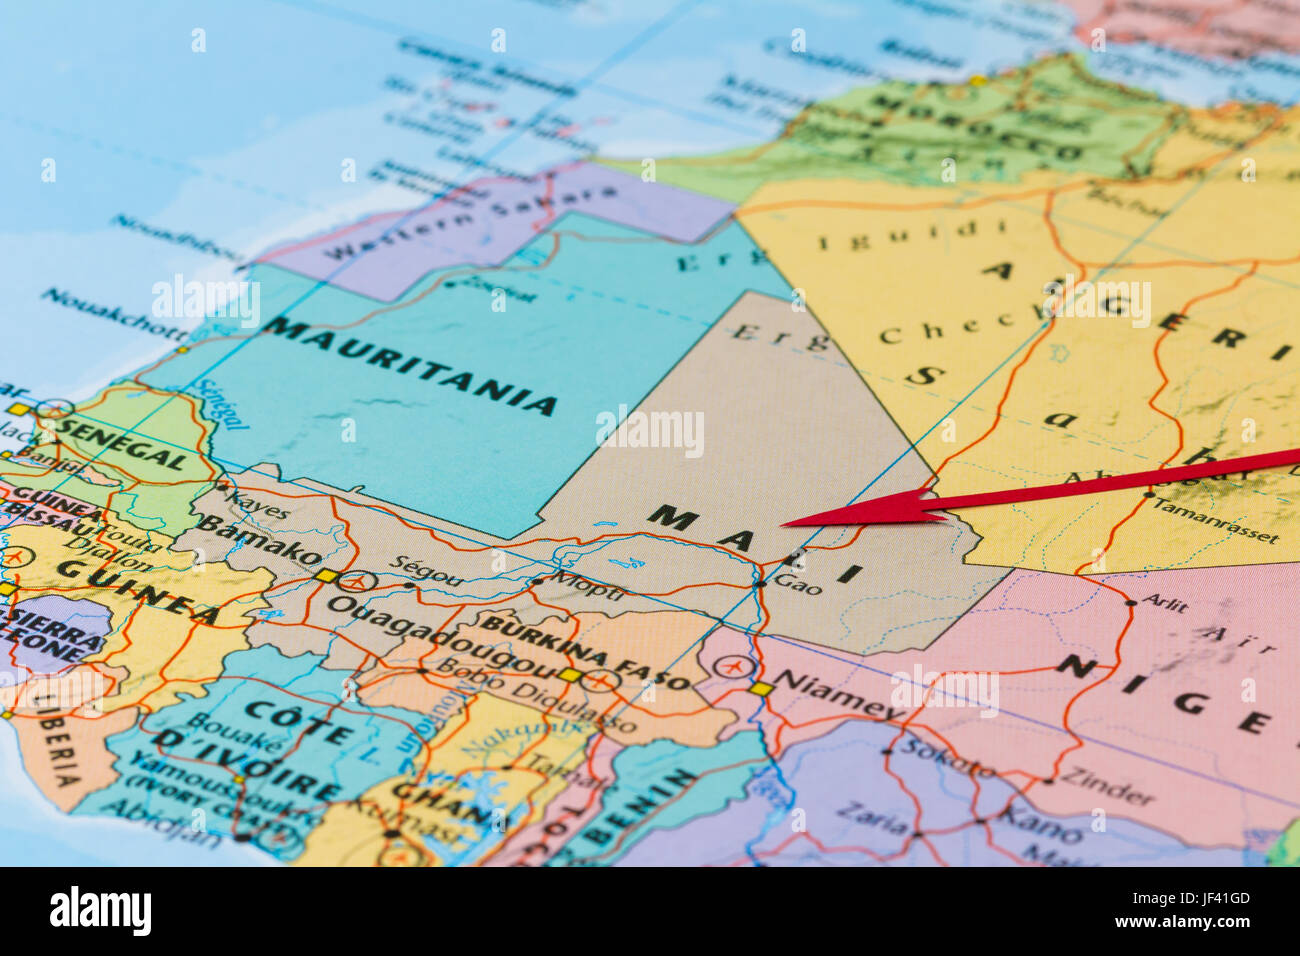 Photo Of Mali Country Indicated By Red Arrow Country On African Stock Photo Alamy